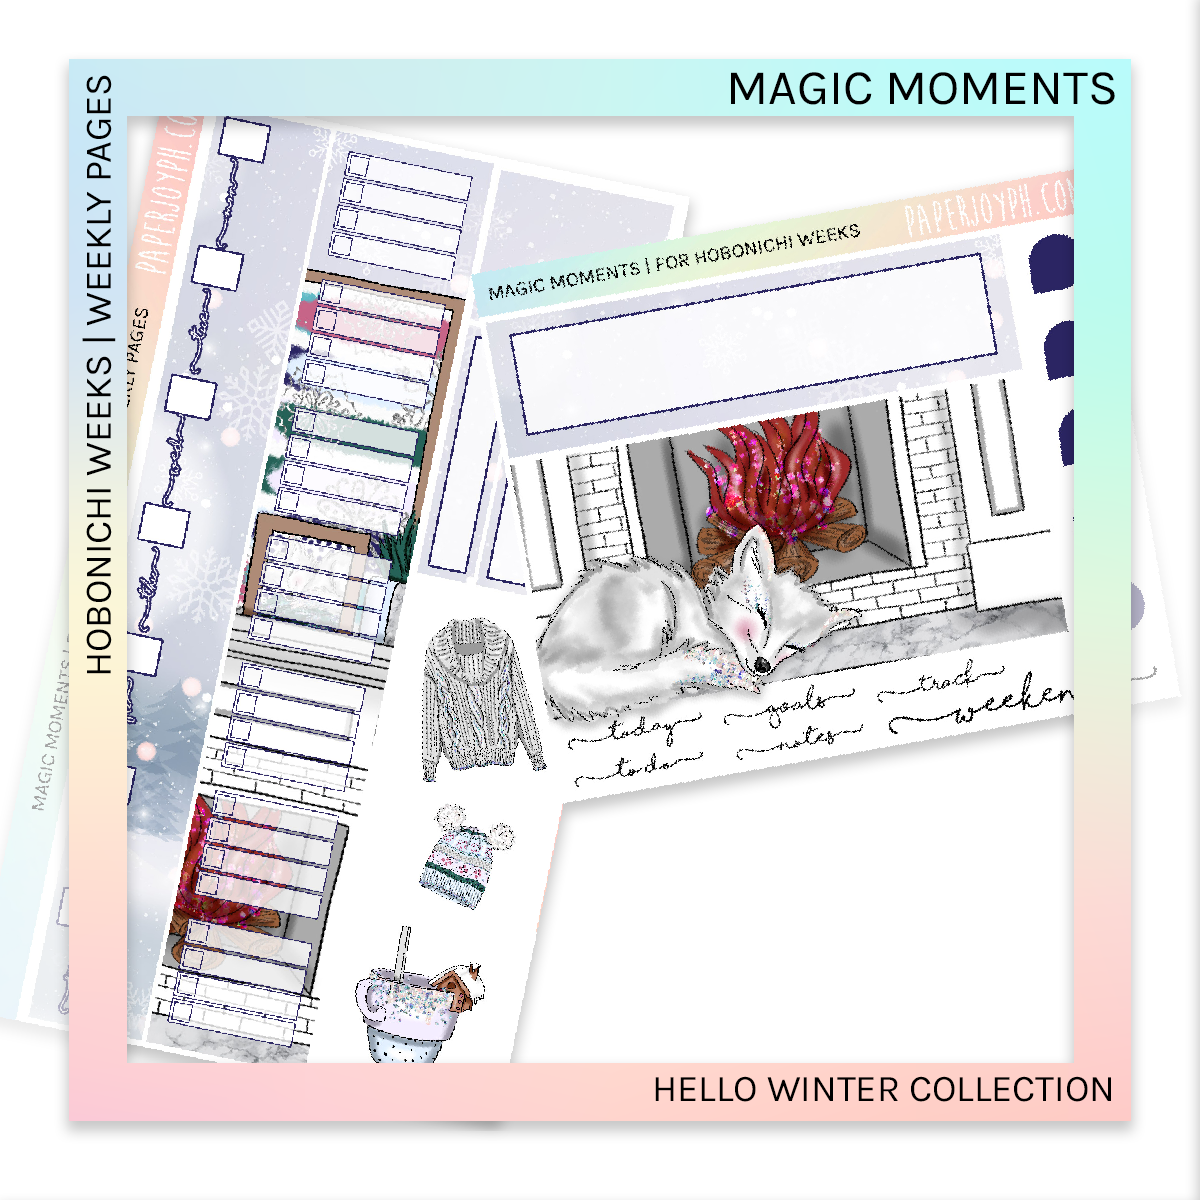 HOBONICHI WEEKS | WEEKLY PAGES | Magic Moments